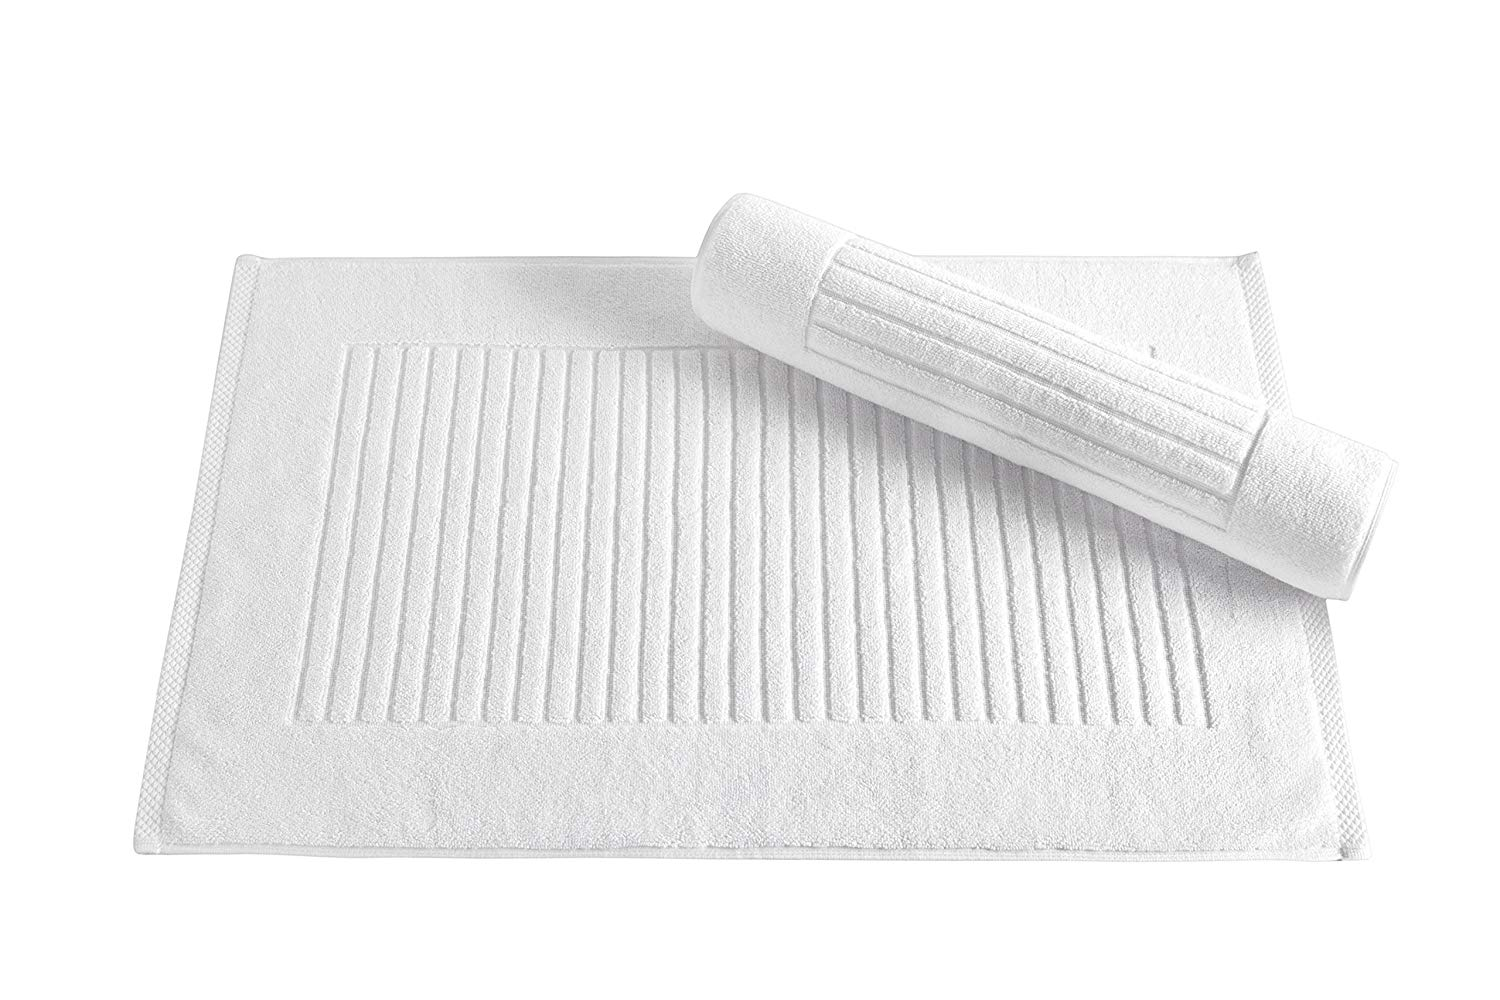 Classic Turkish Towels 2 Piece Bath Mat Set 20 x 33 inch - Soft and Absorbent Ribbed Bath Mats Made with 100% Turkish Cotton,White